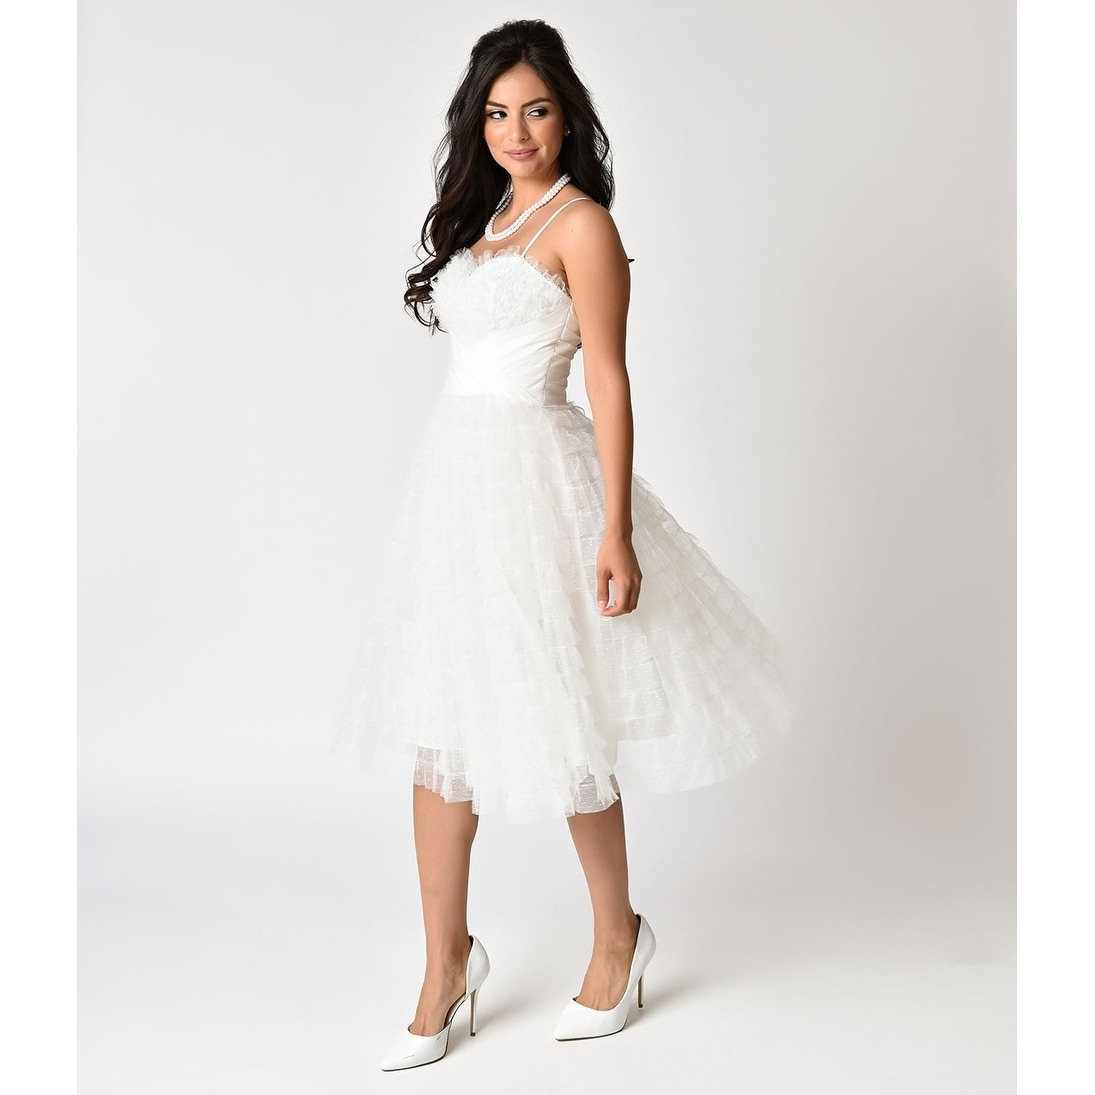 9cc61c06d5f Shop Unique Vintage White Ruffled Tulle Sweetheart Cupcake Swing Dress -  Free Shipping Today - Overstock - 21026168